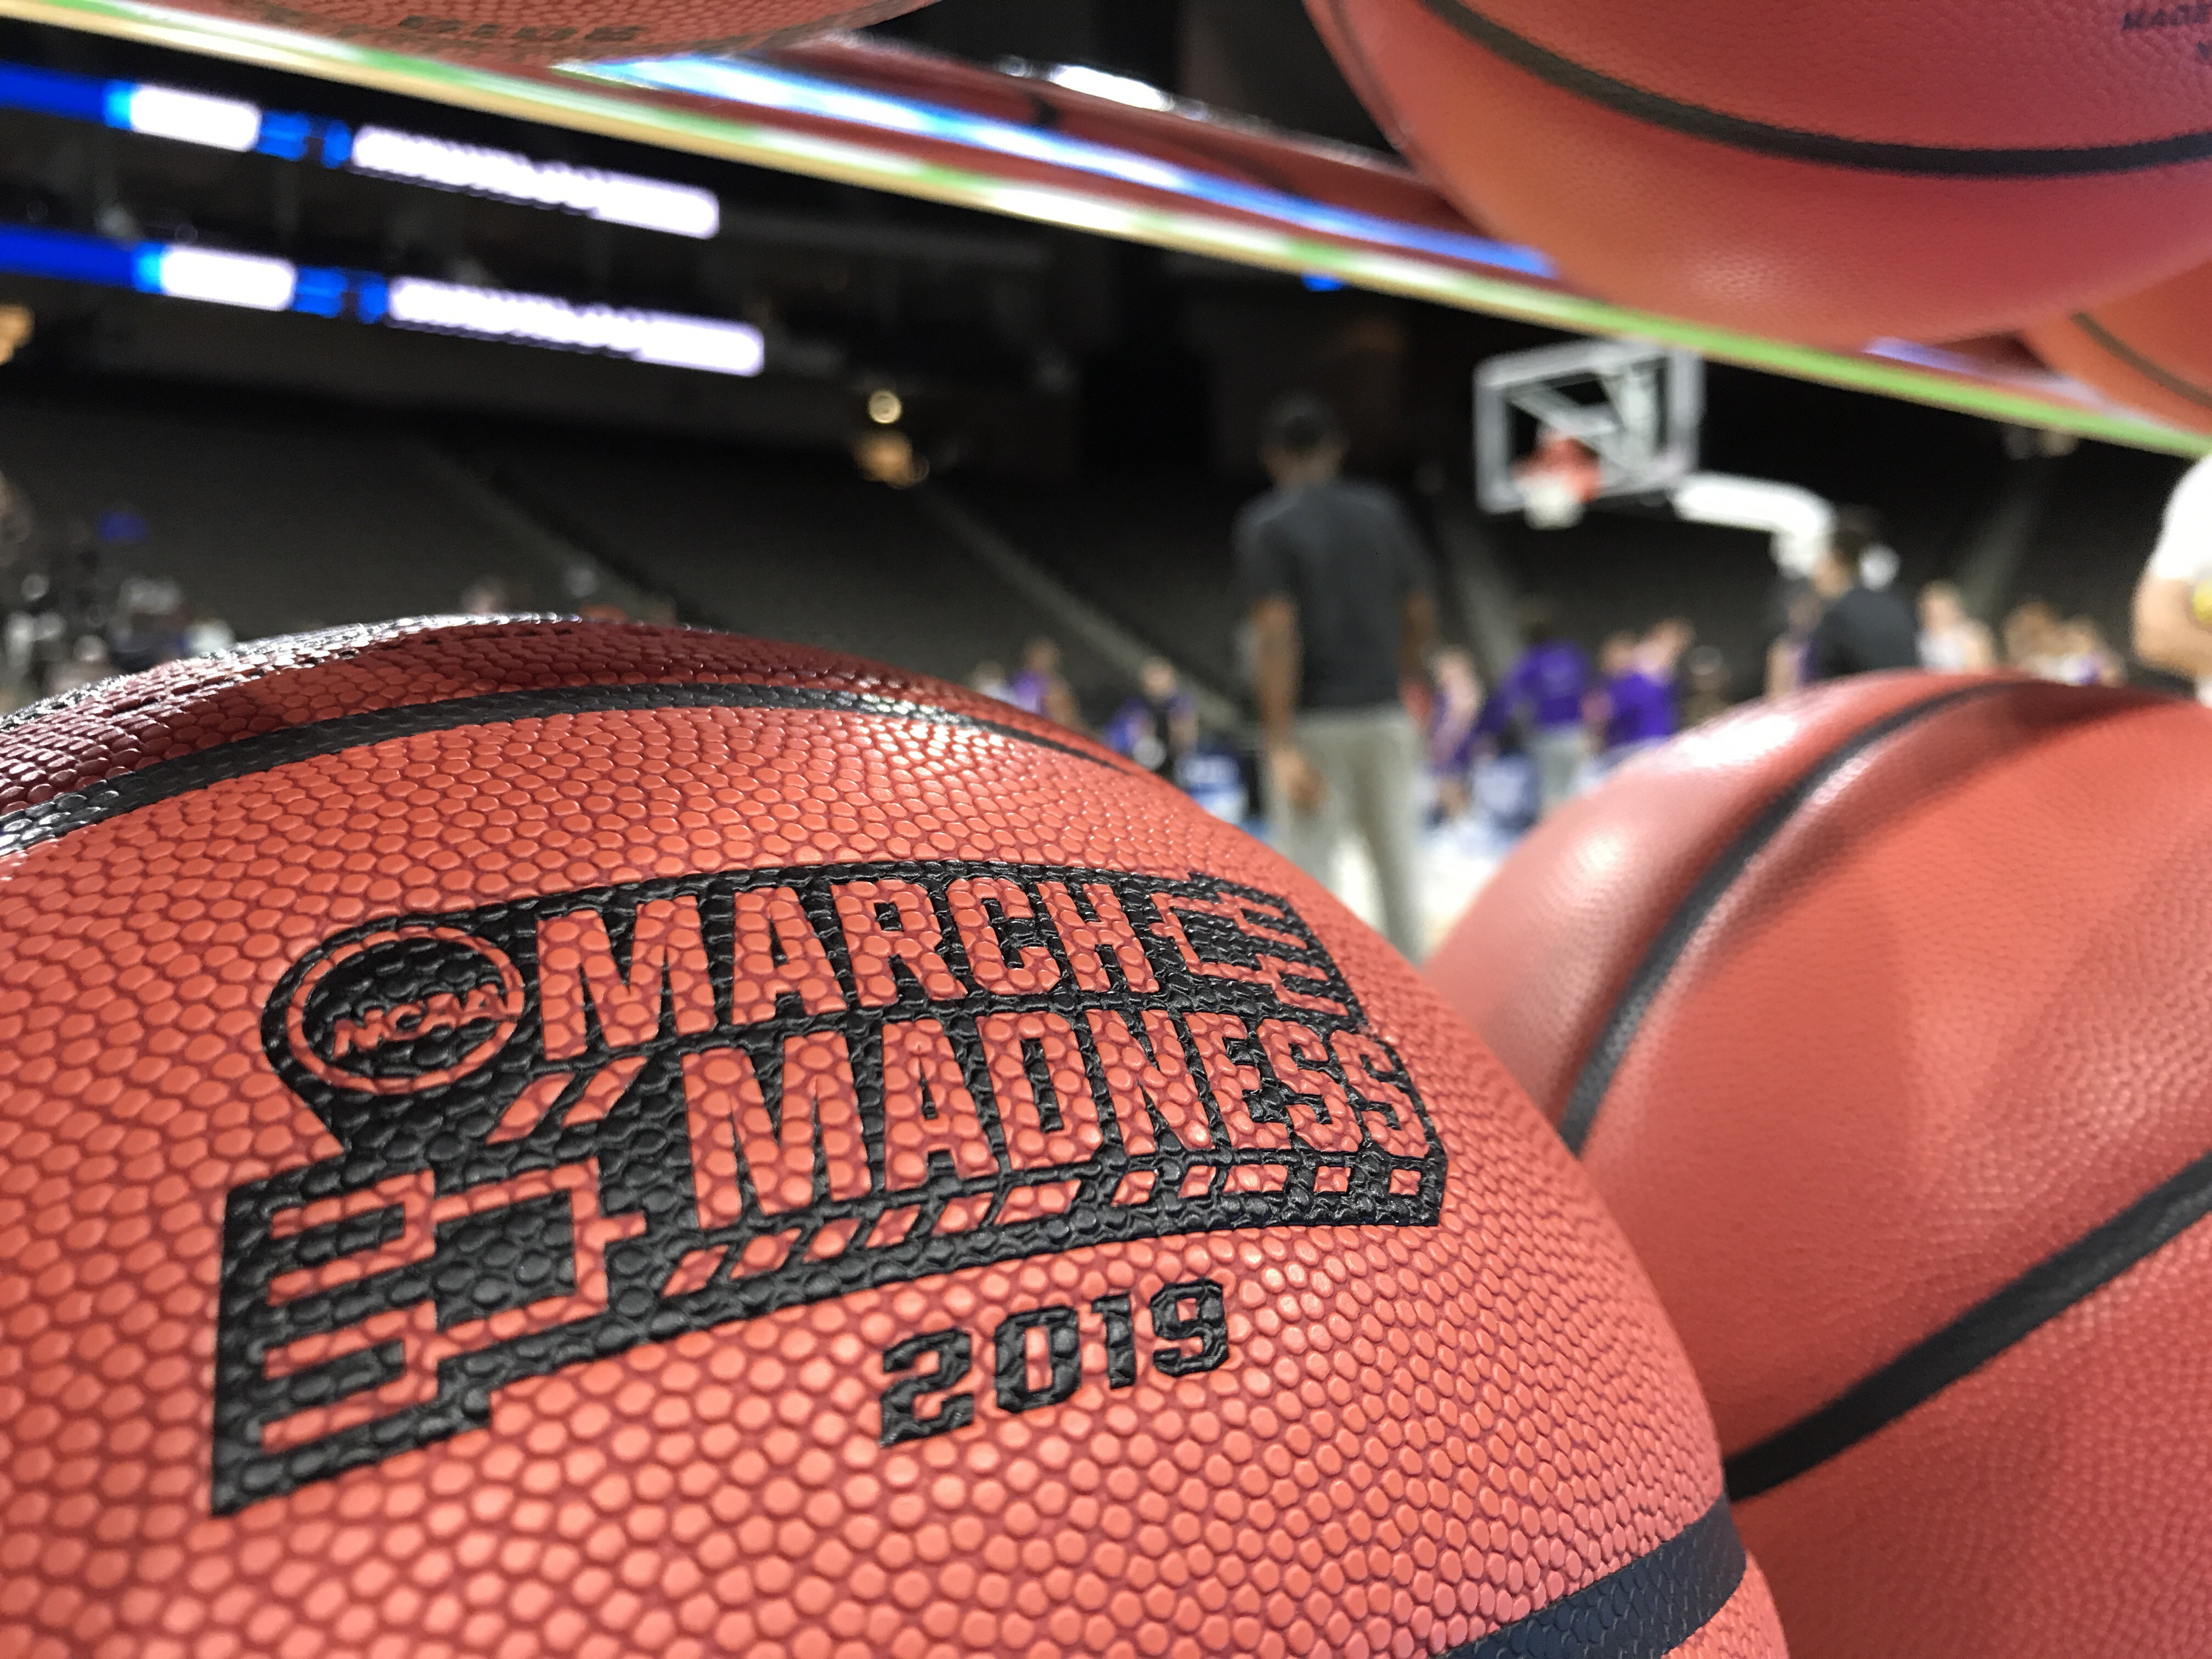 In March, the Wildcat men's and women's basketball teams played in their first NCAA Tournaments since ACU transitioned to Division I in 2013.